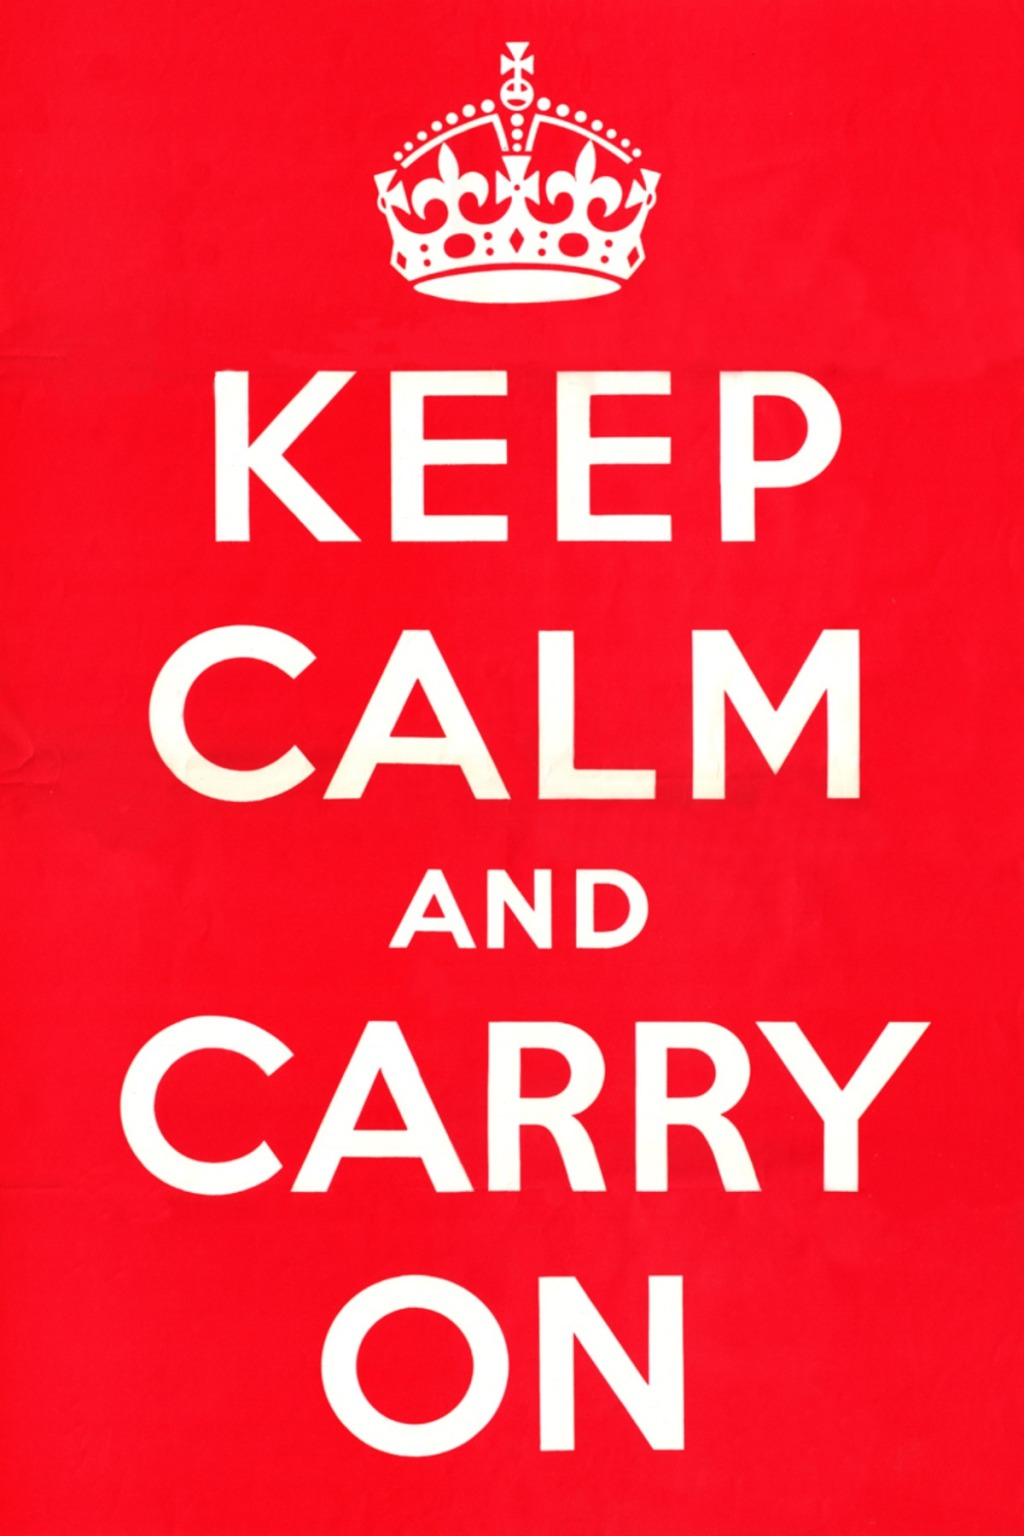 00 Unknown Artist. Keep Calm and Carry On. 1939 UK WW2 ...